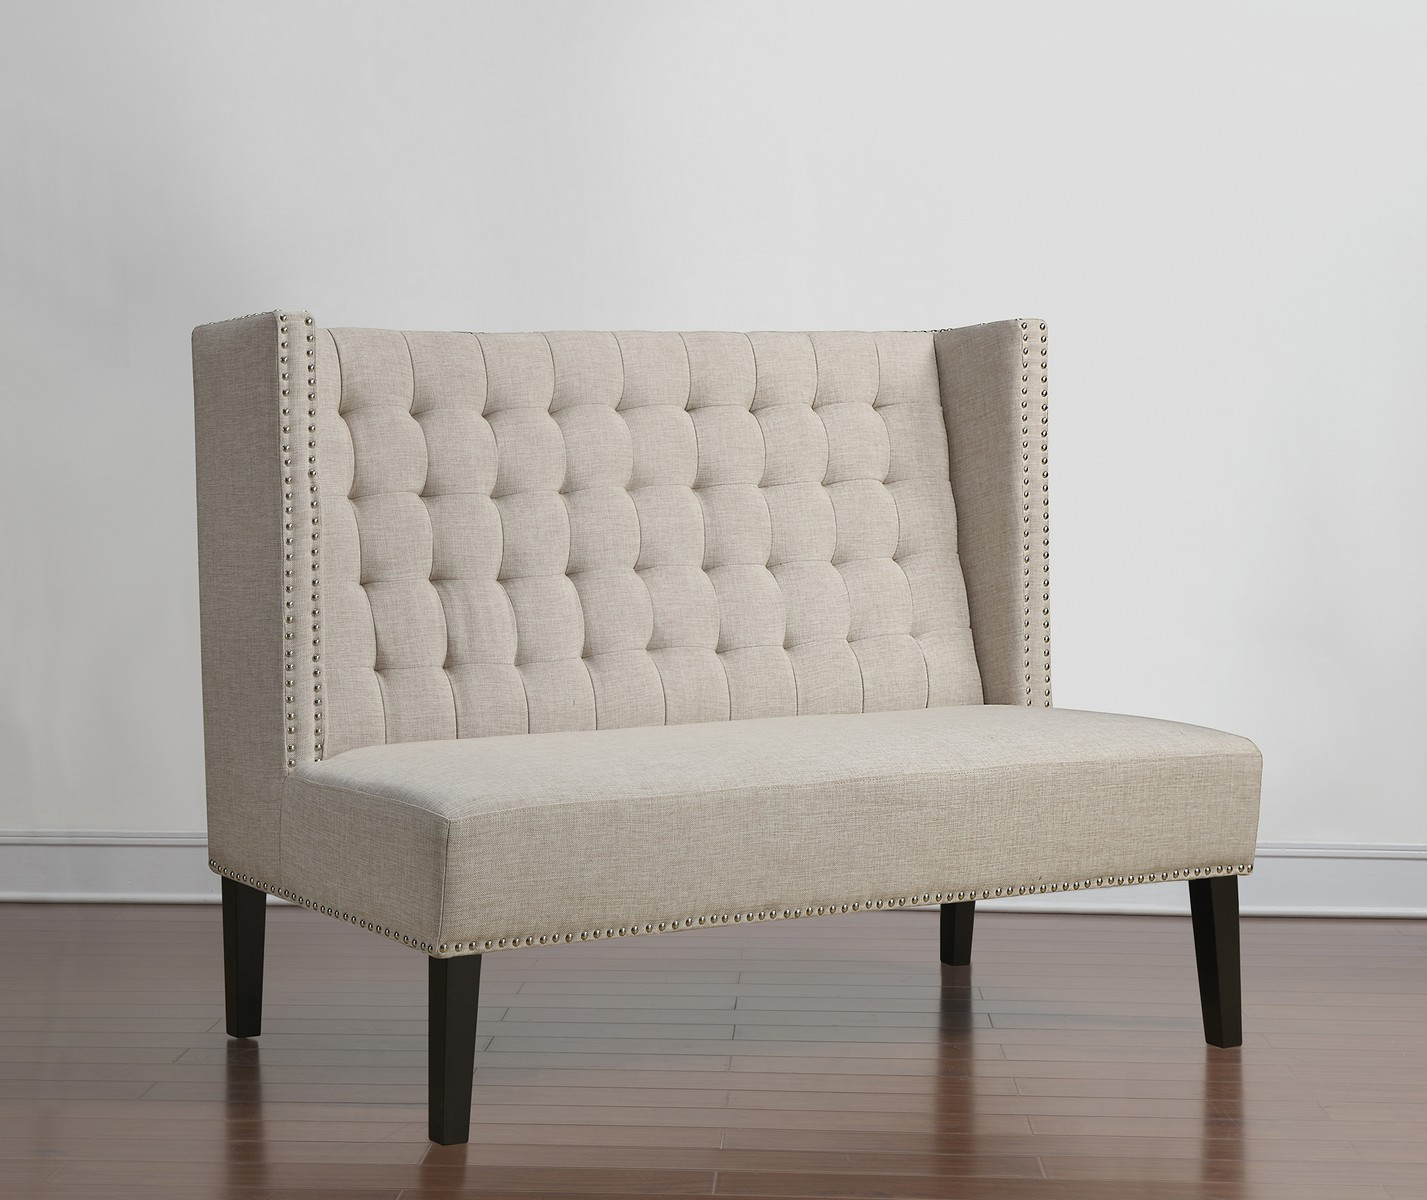 Tov furniture halifax beige linen banquette bench 63114 for Banquette bench